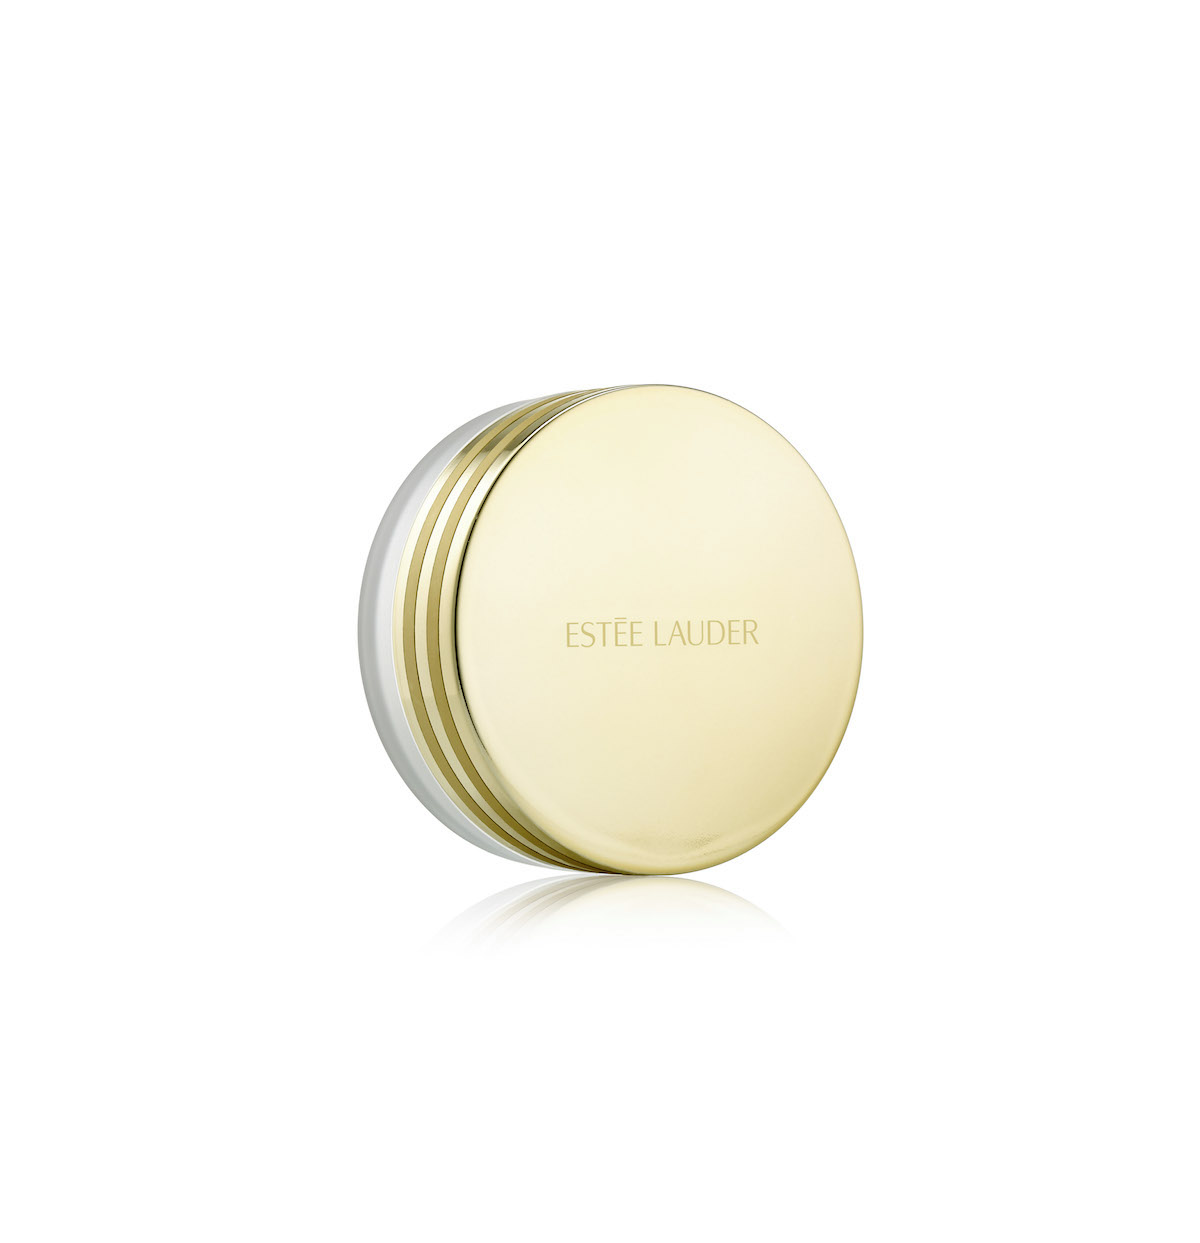 EsteeLauder_Advanced Night Cleansers_Balm Product Shot_Global_Expiry December 2017